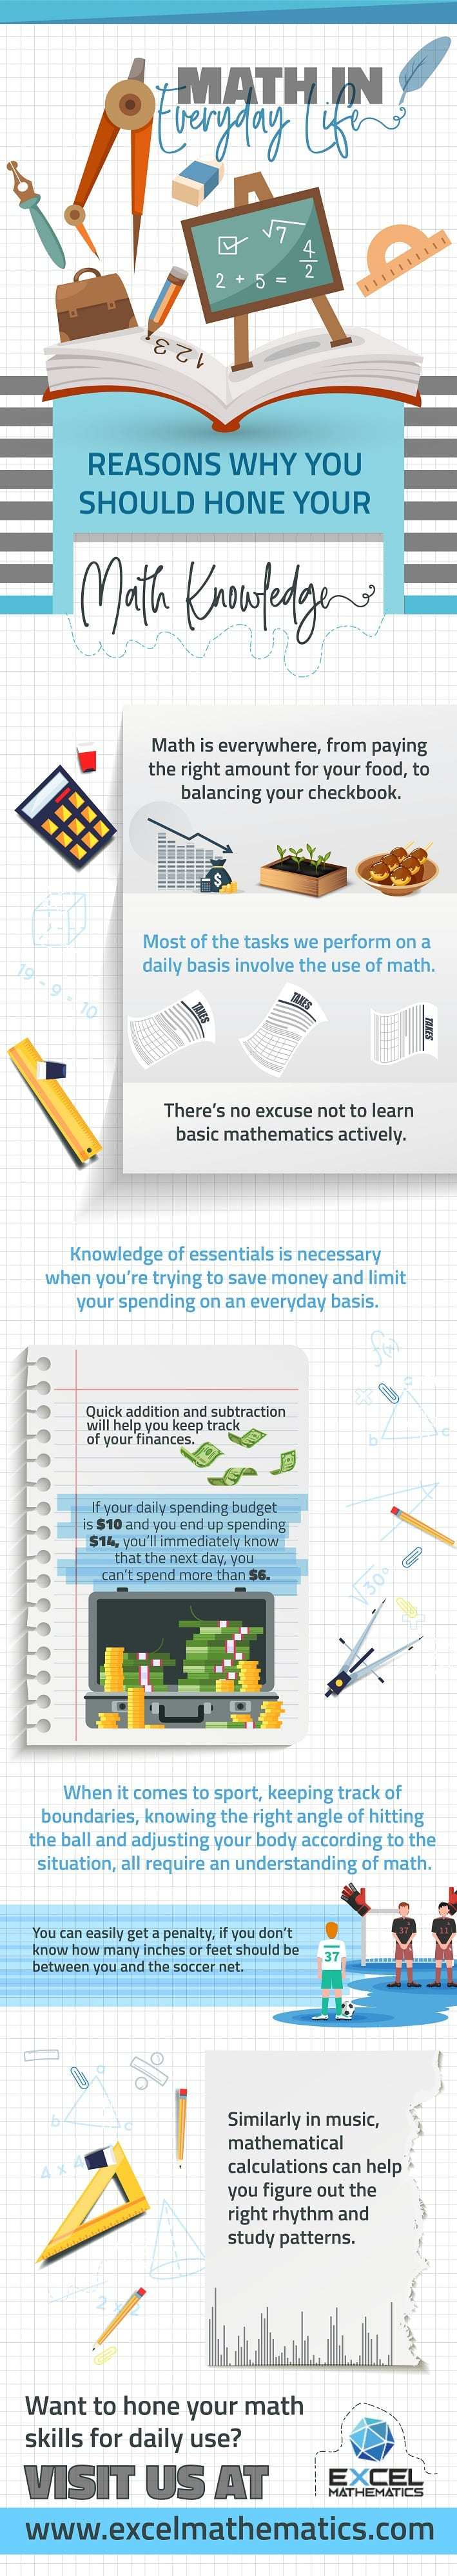 reasons to increase Knowledge, Reasons Why You Should Hone Your Math Knowledge